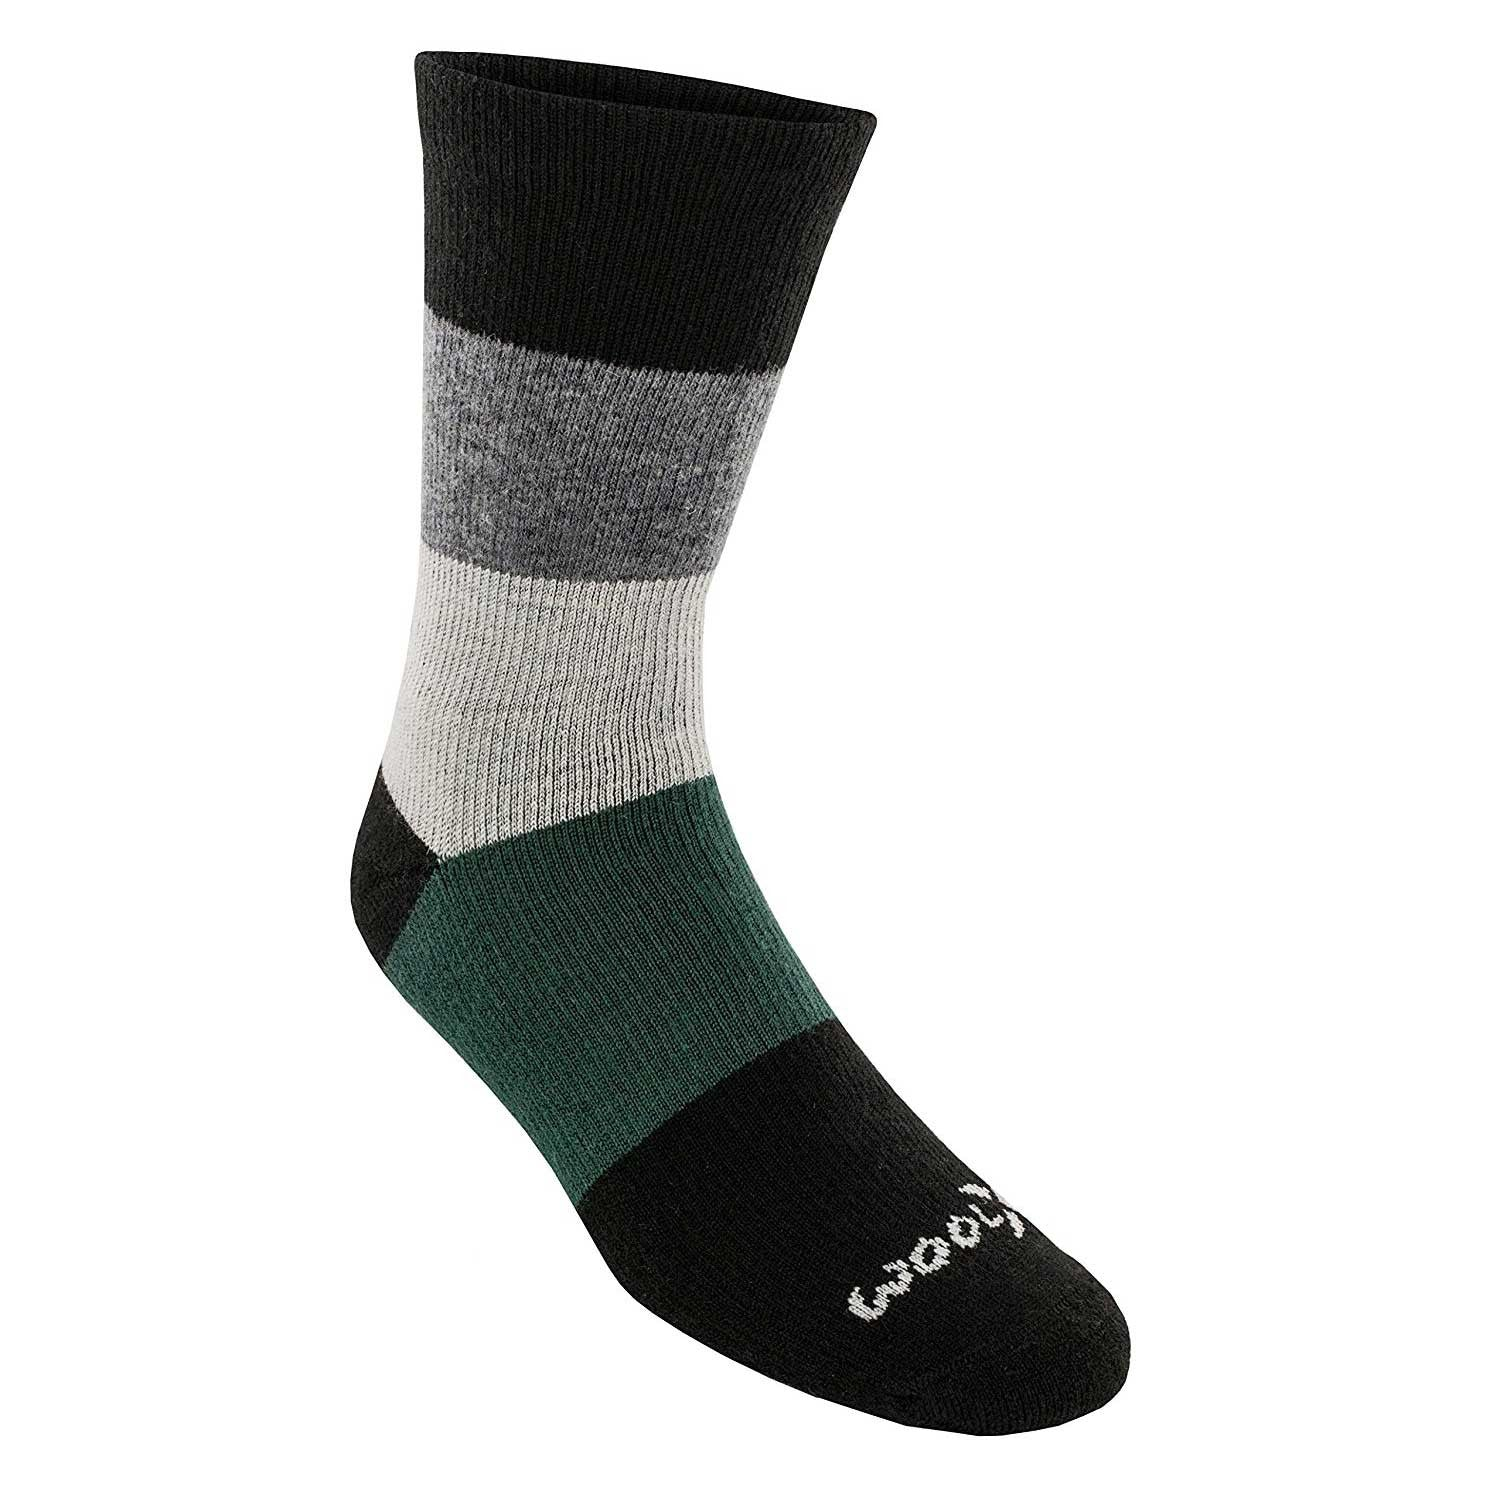 Mens Merino Wool Socks - Spruce Stripe